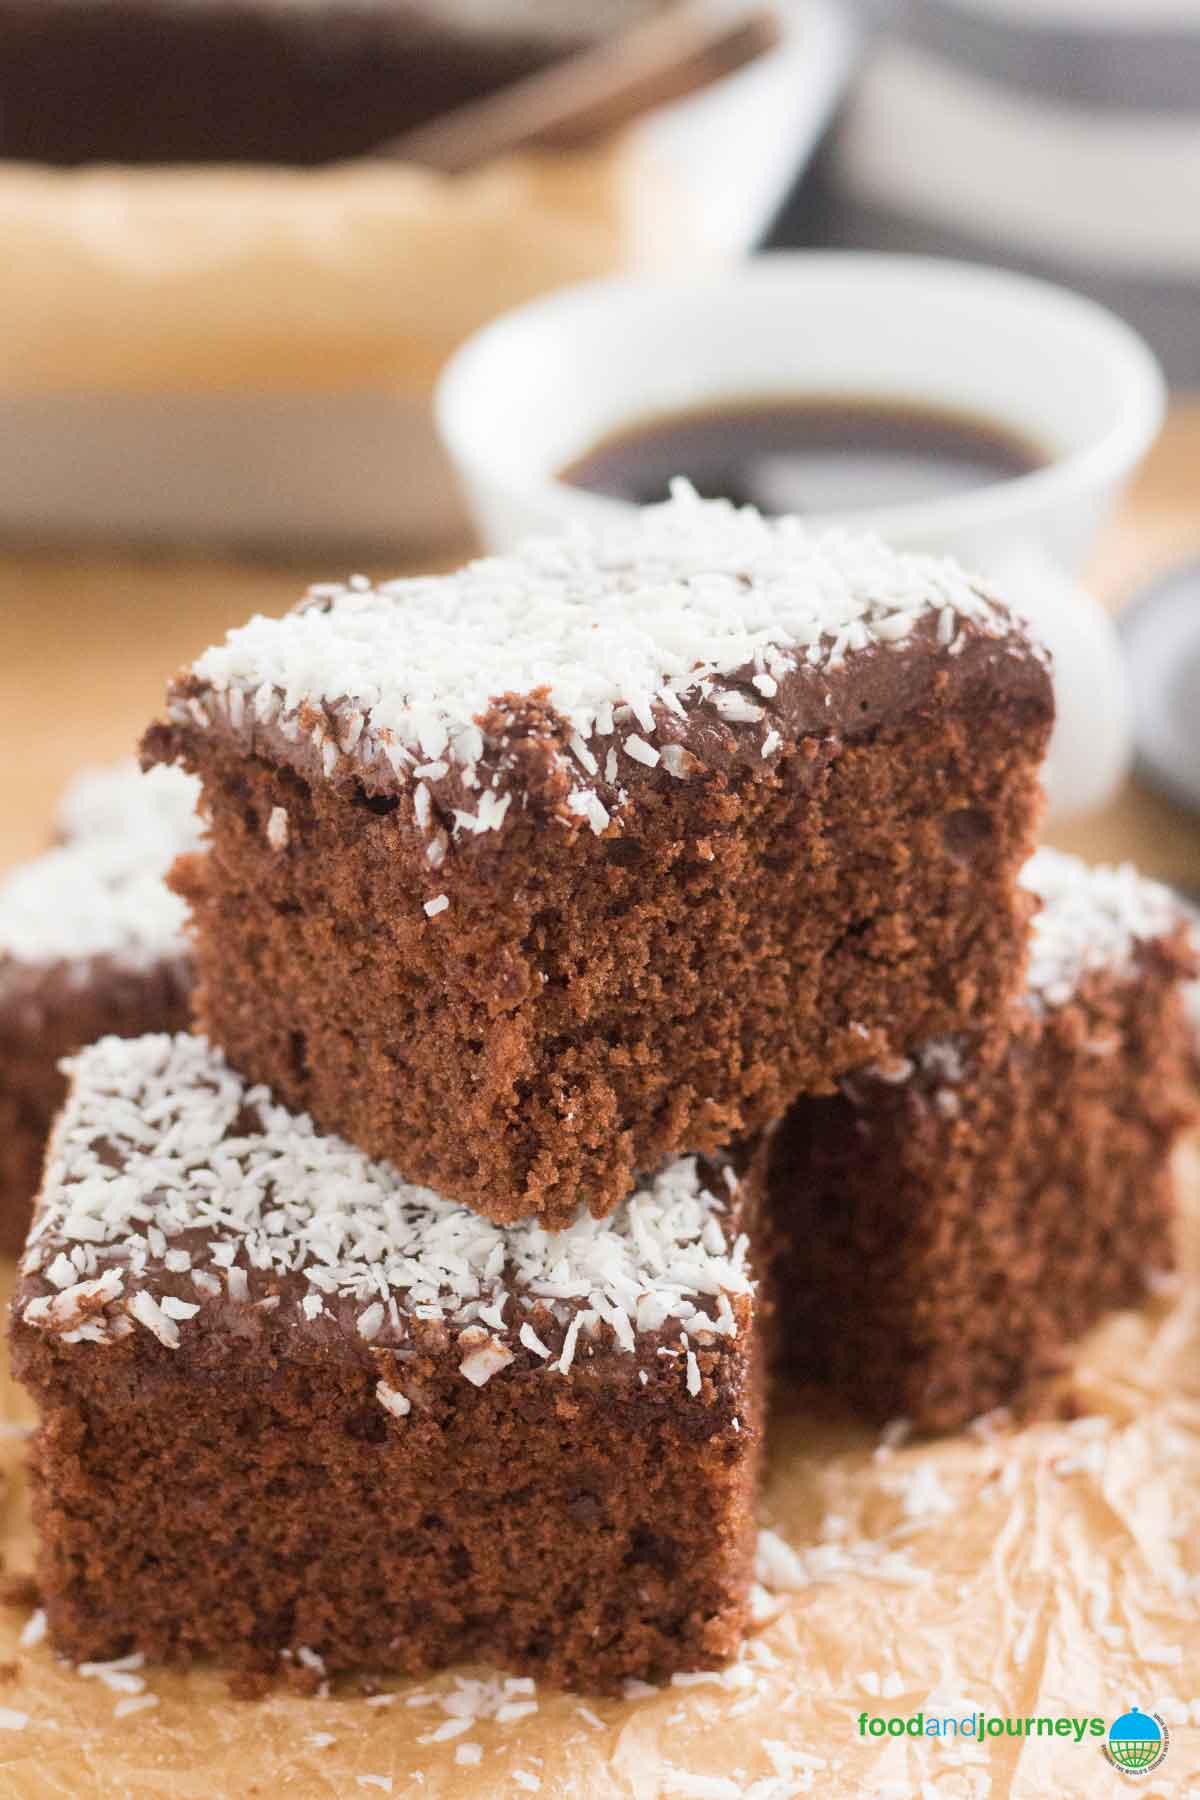 Swedish Chocolate Coffee Squares, served with a cup of coffee, ready to be enjoyed.